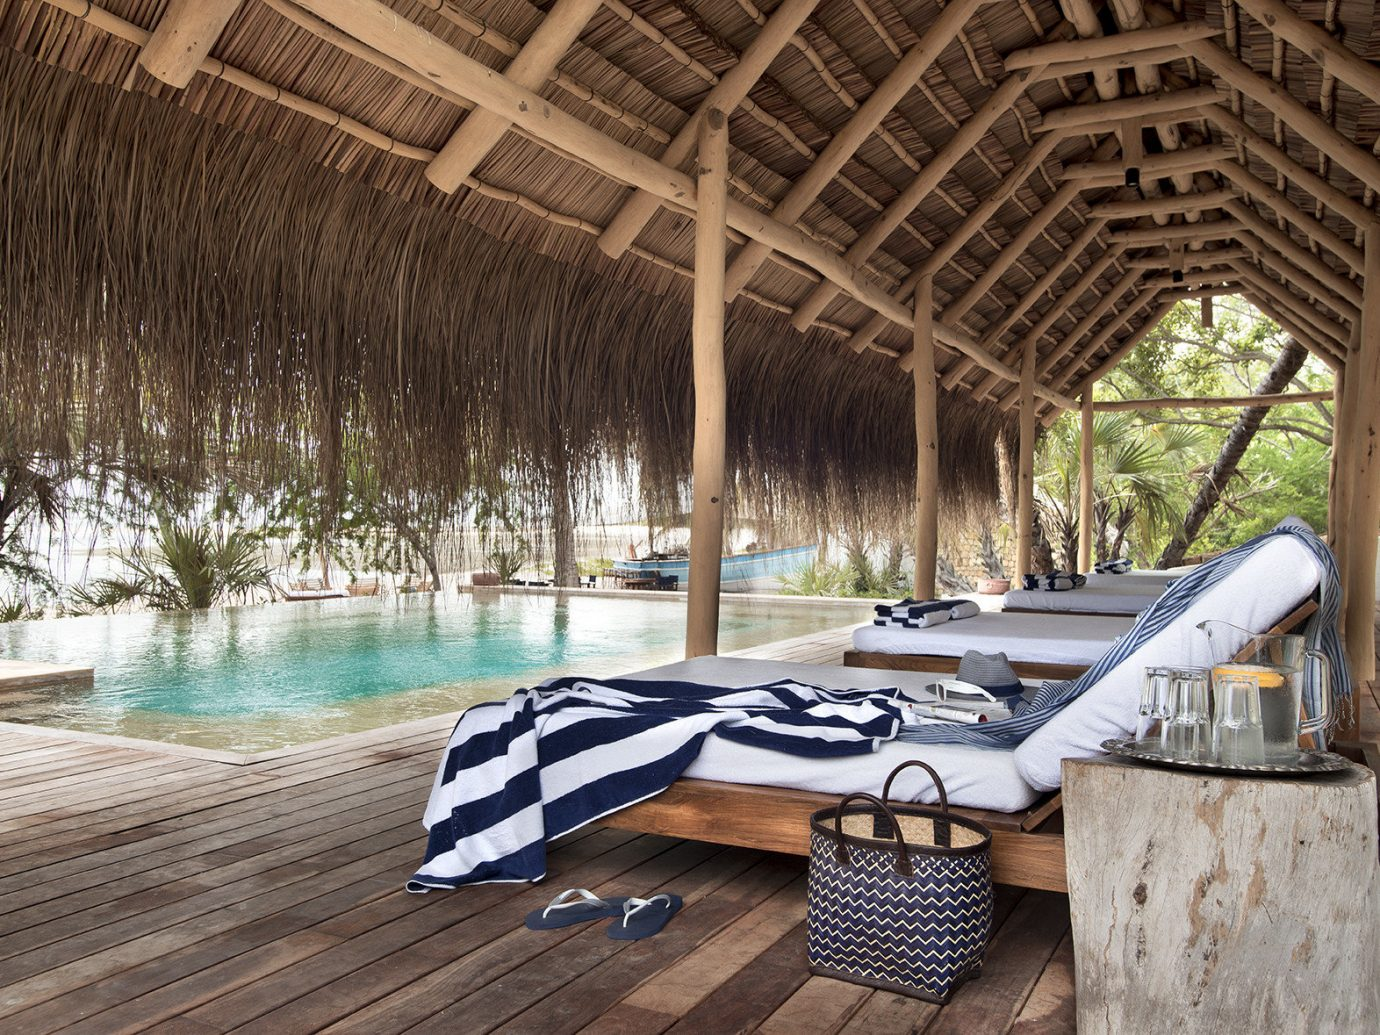 Trip Ideas outdoor house estate wood swimming pool home backyard interior design outdoor structure Resort cottage